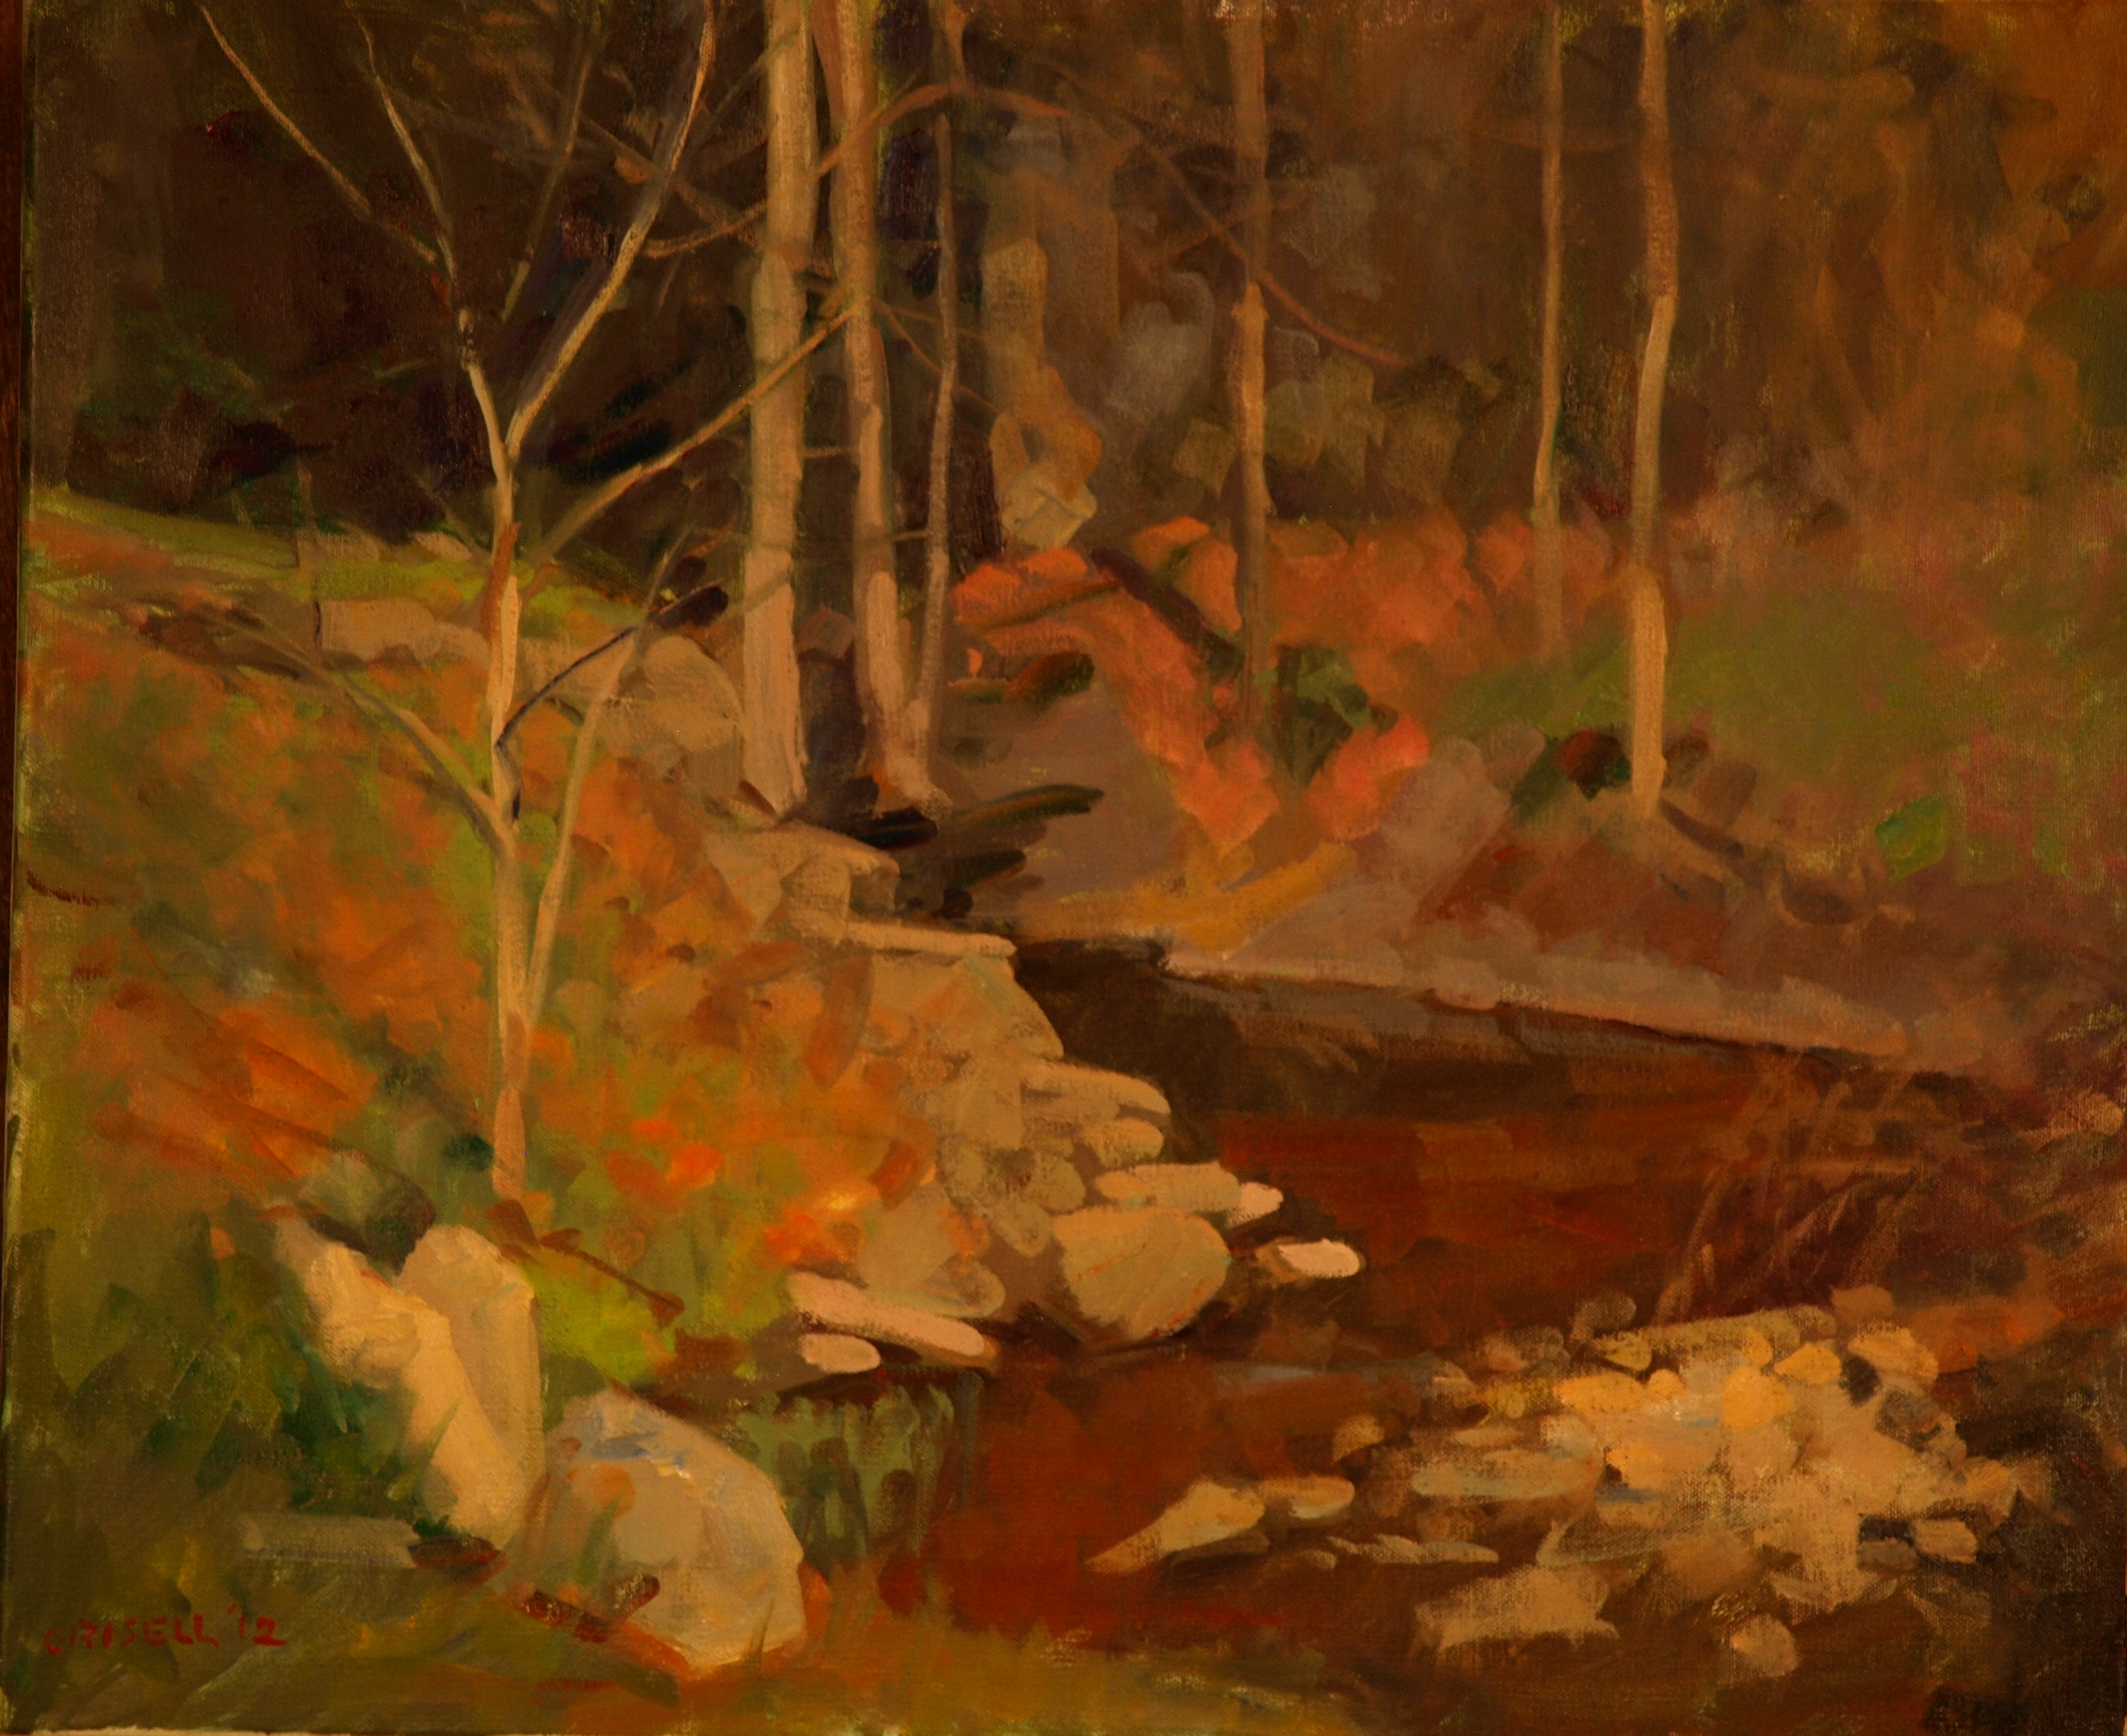 Dark Brook, Oil on Canvas, 20 x 24 Inches, by Susan Grisell, $650